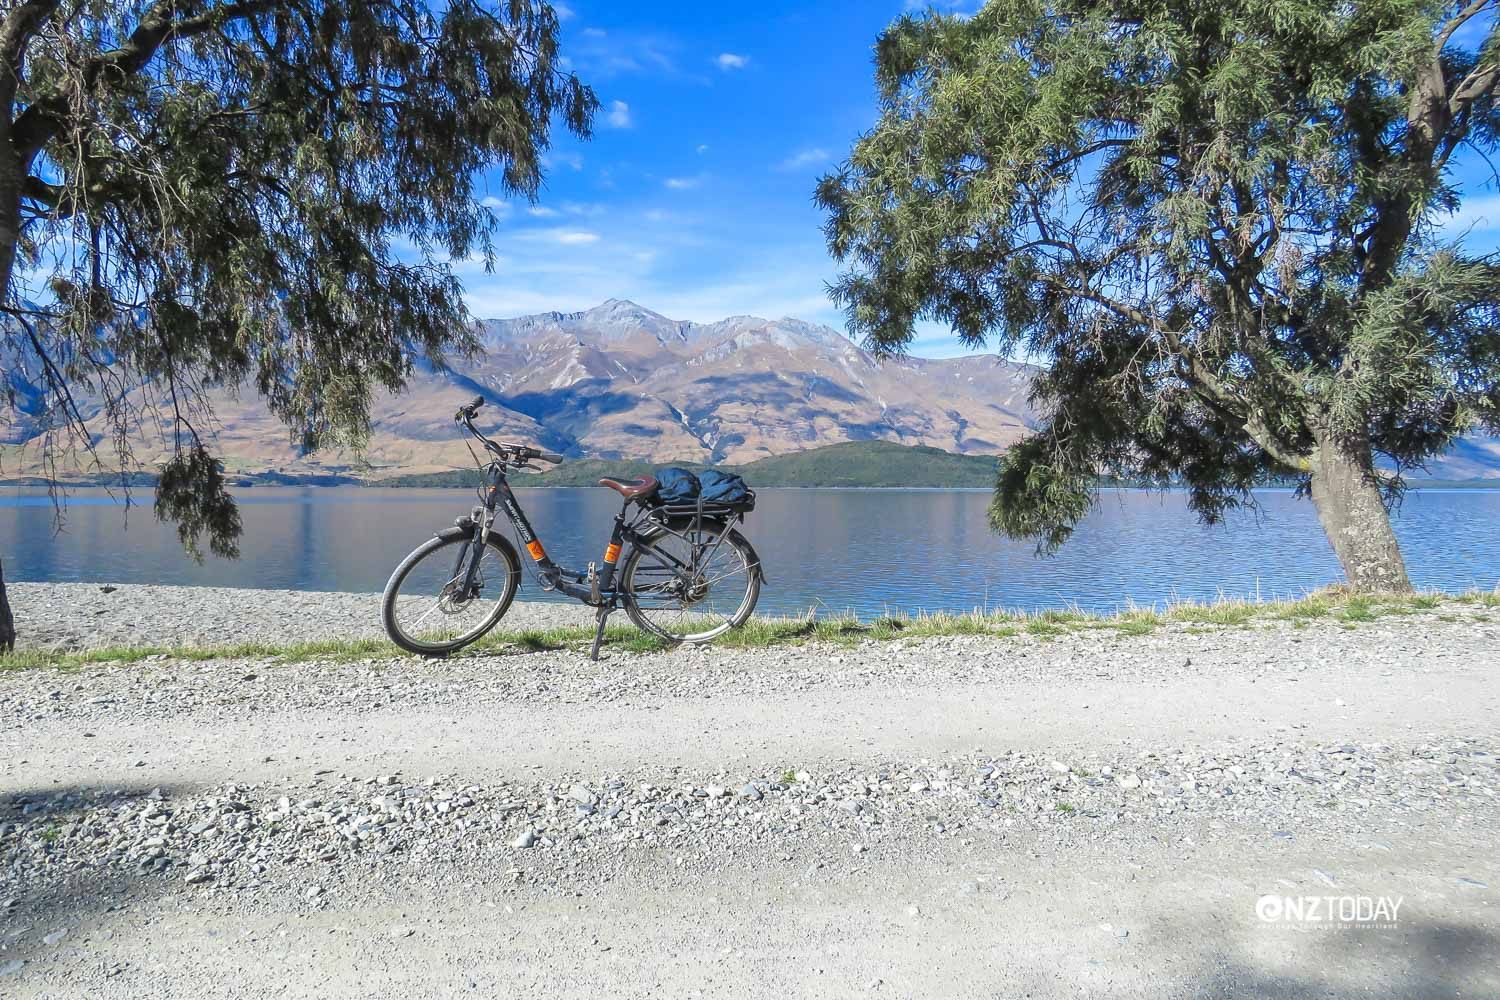 Lake Wakatipu is seldom like a mirror but the day we cycled from Kinloch to the Greenstone Valley, the whole lake was glassy calm